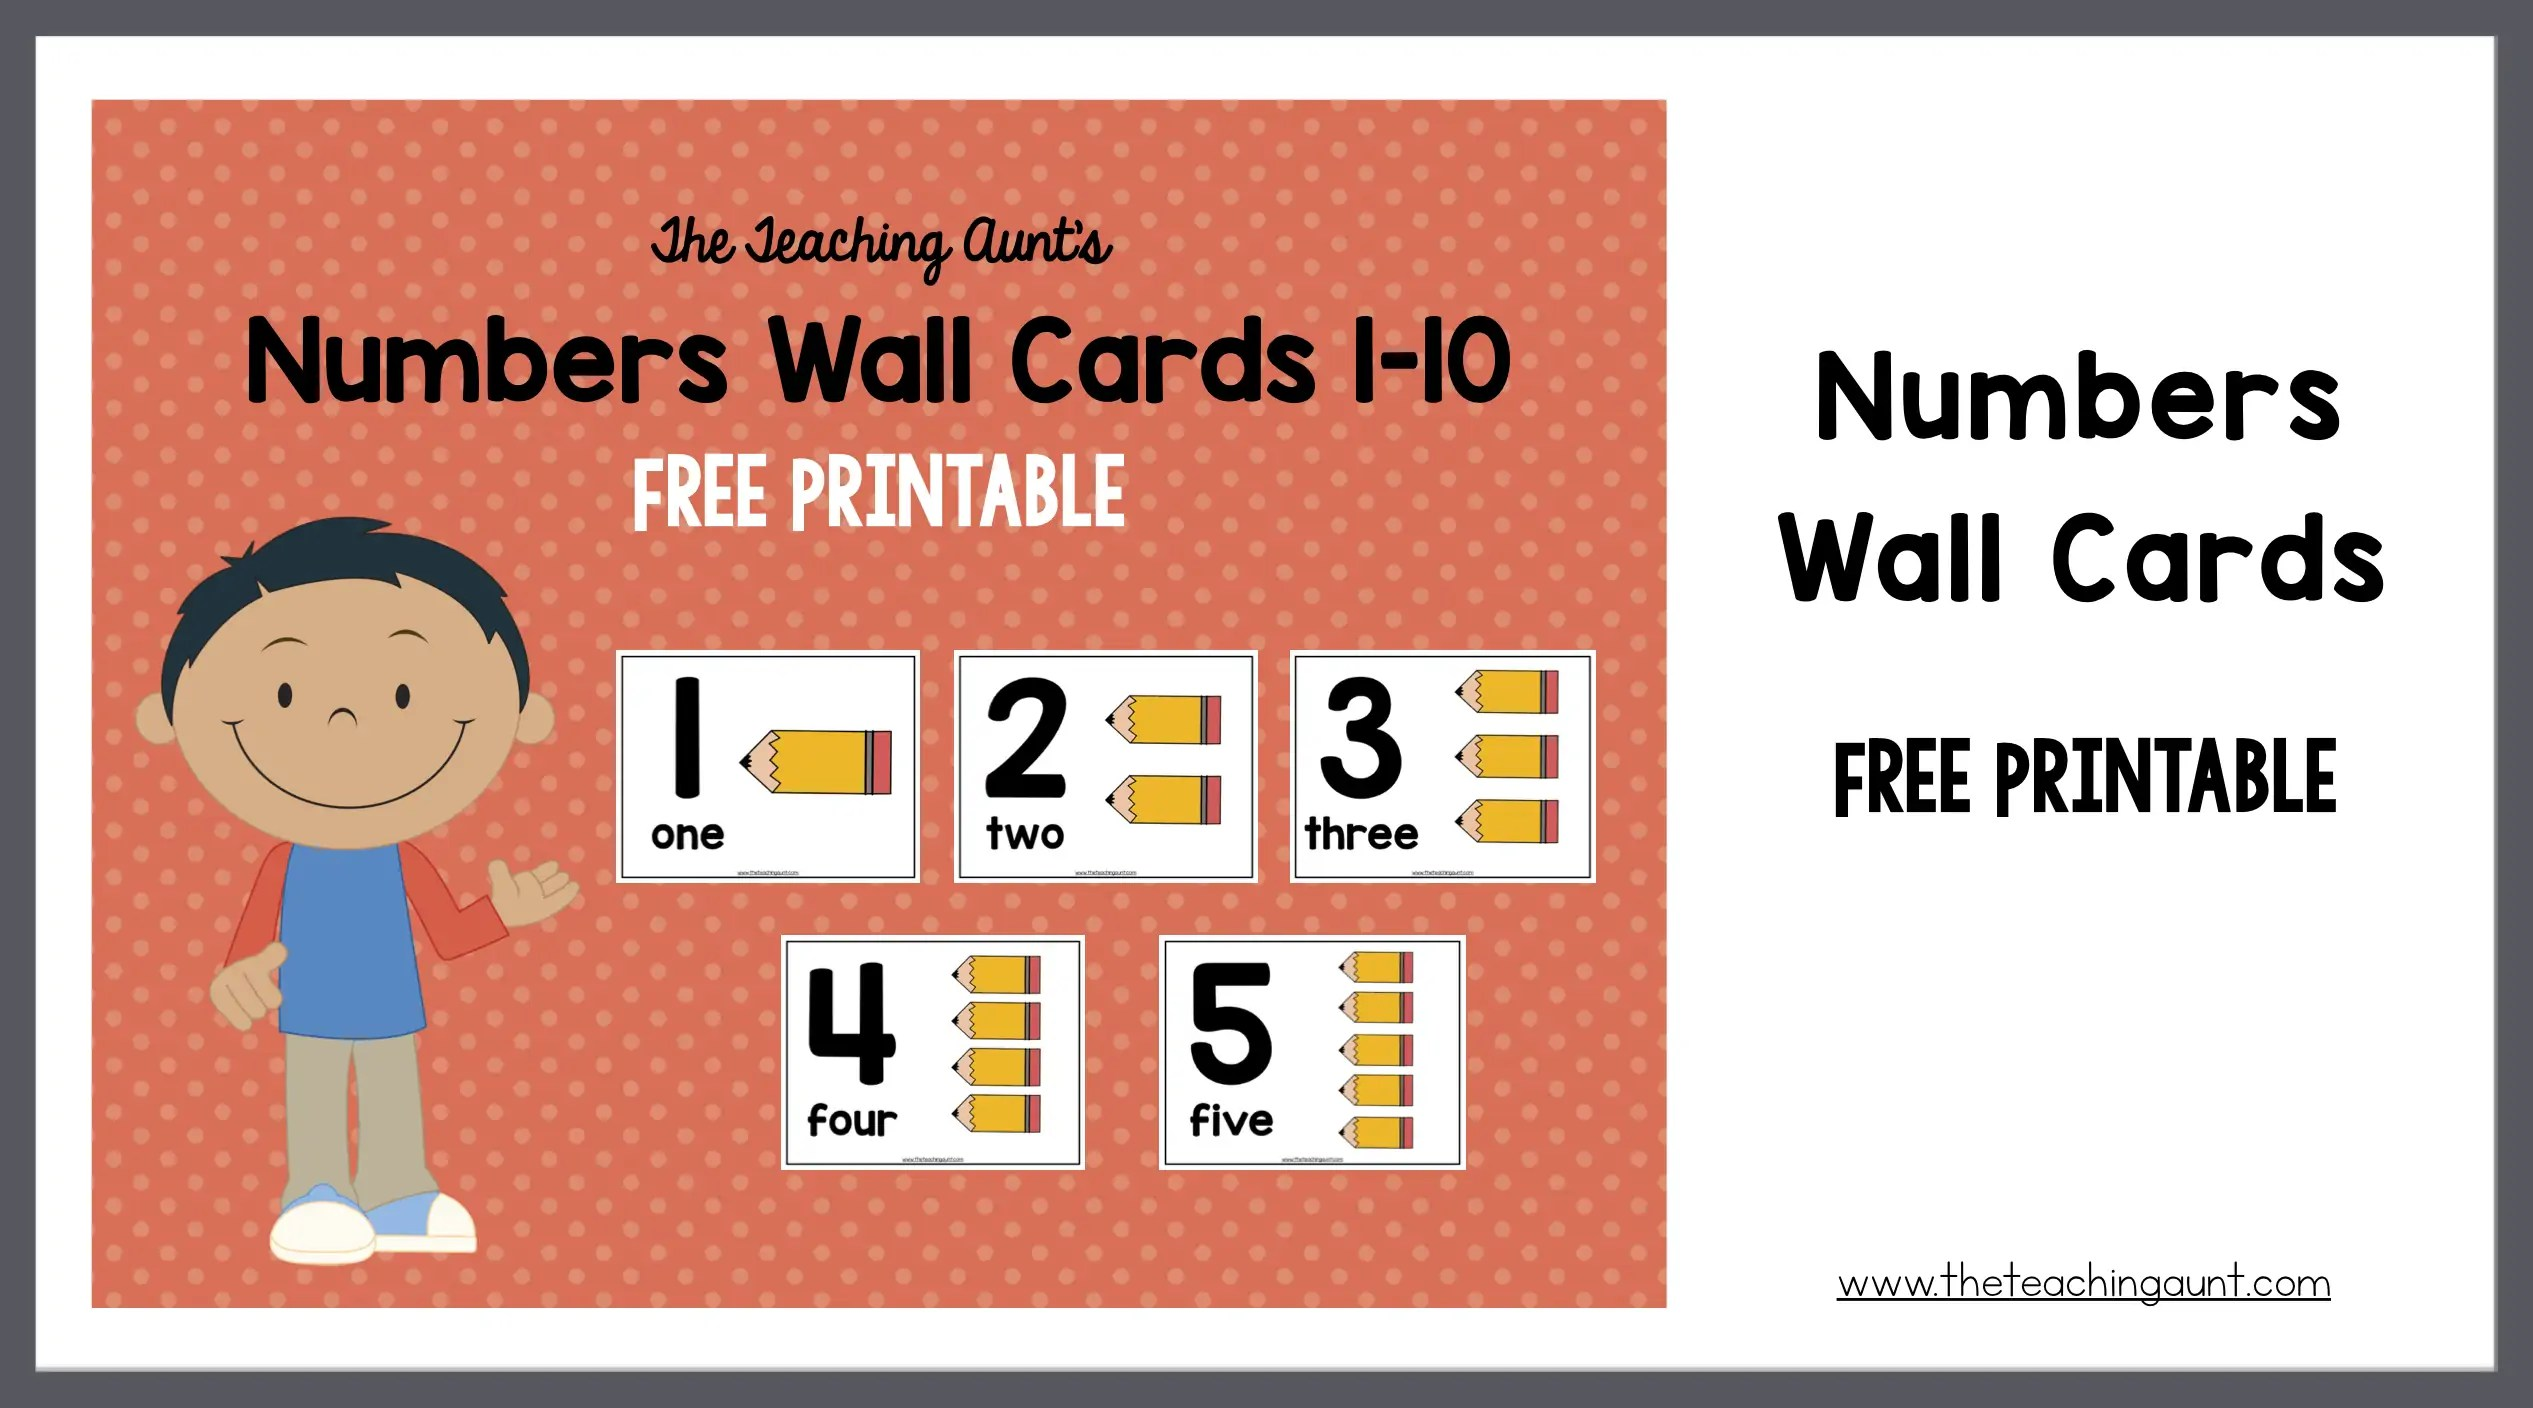 photo regarding Free Printable Numbers identify Quantity Wall Playing cards for Preschoolers - The Education Aunt